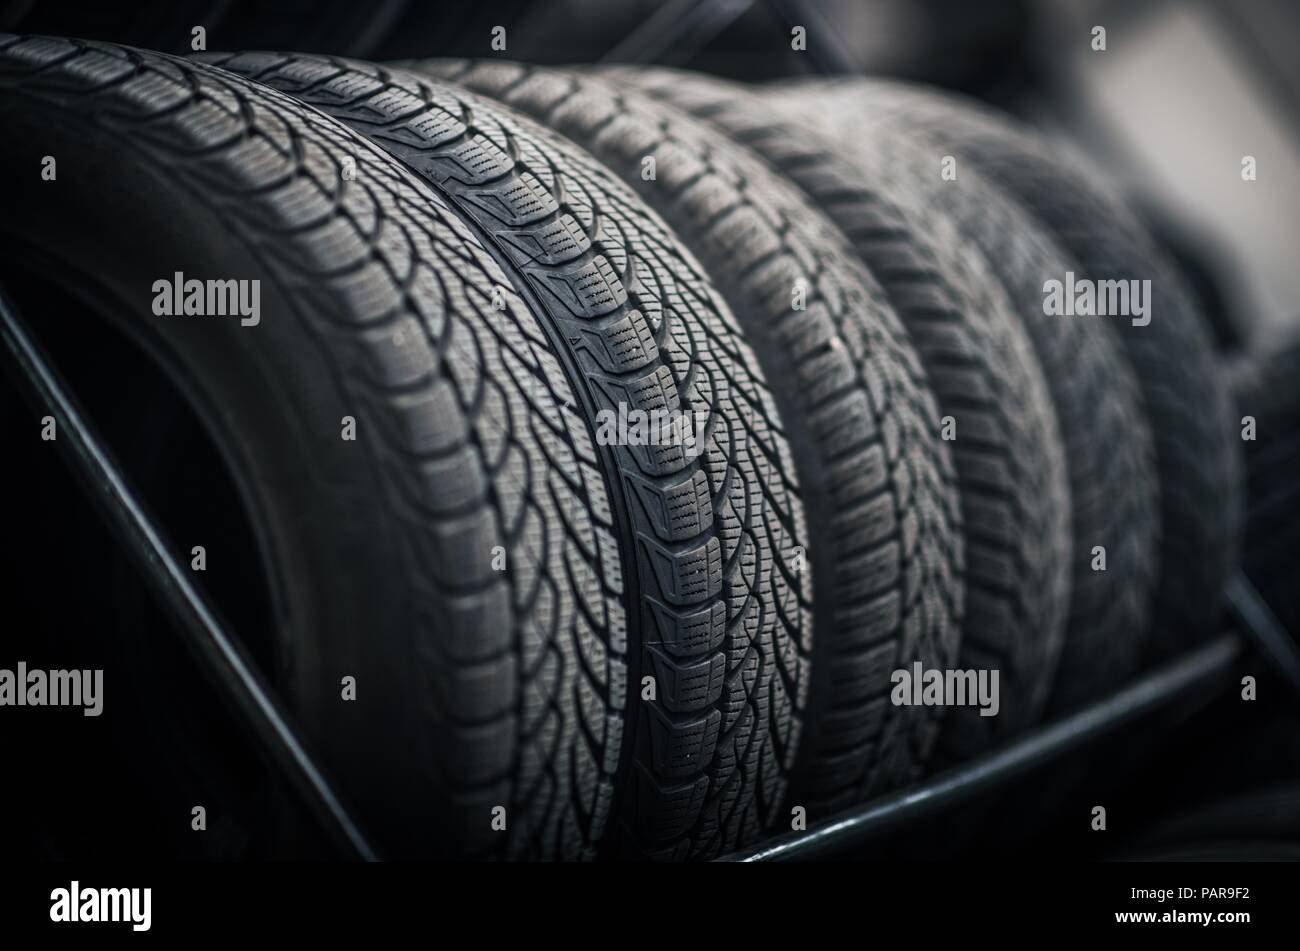 Used Car Tires >> New And Used Car Tires On The Store Rack Automotive Service